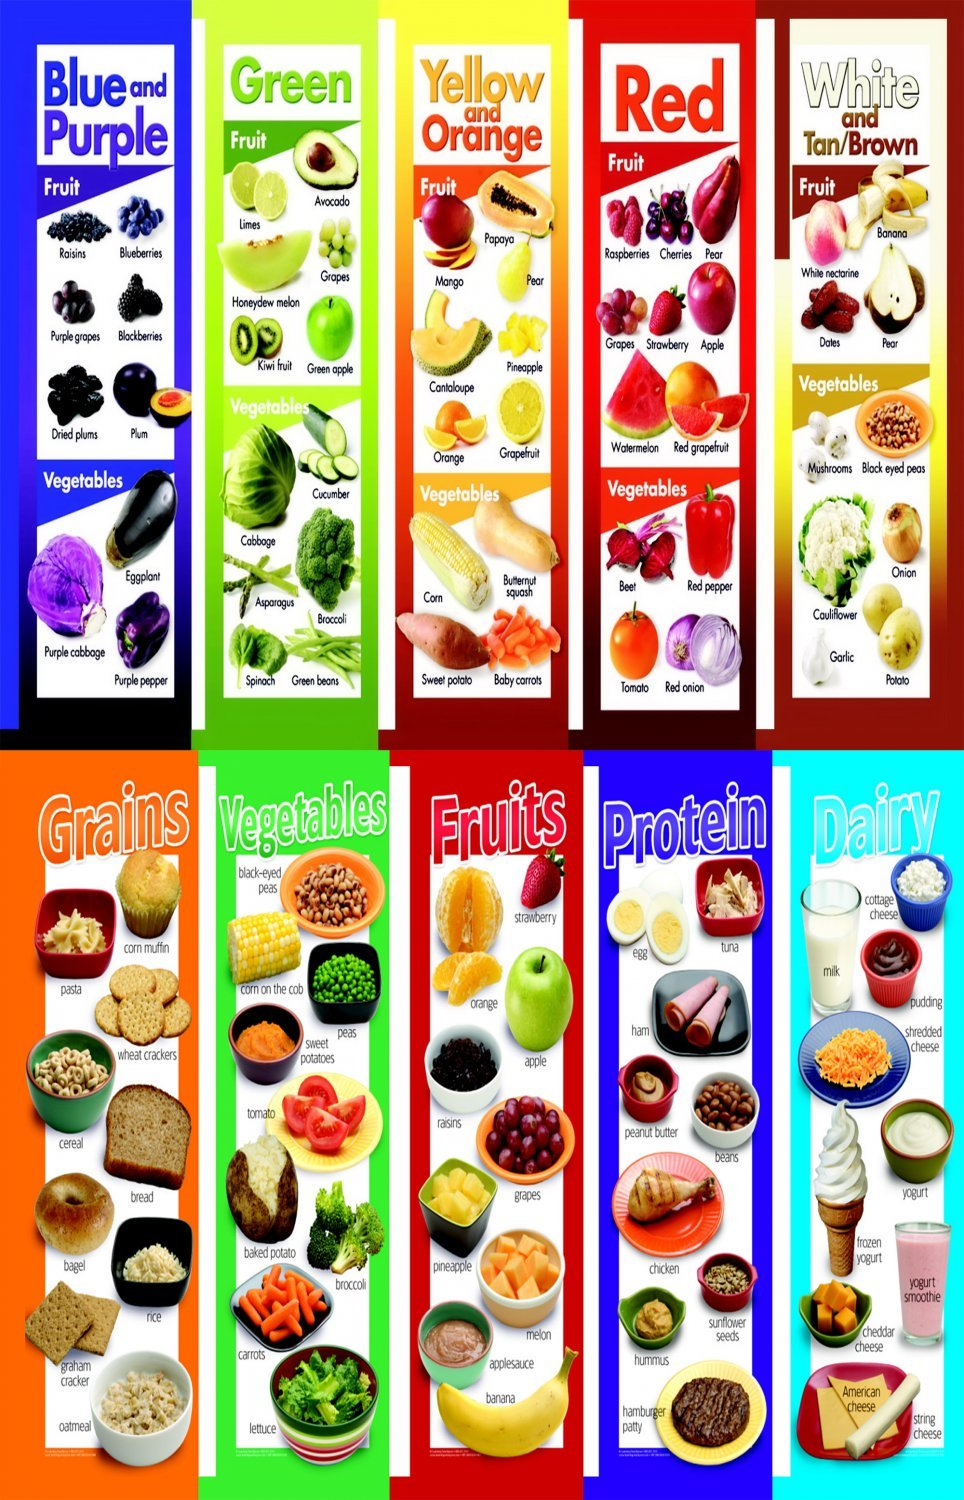 Colored Fruits and Vegetables Grains Protein Dairy Chart   18x28 inches Canvas Print